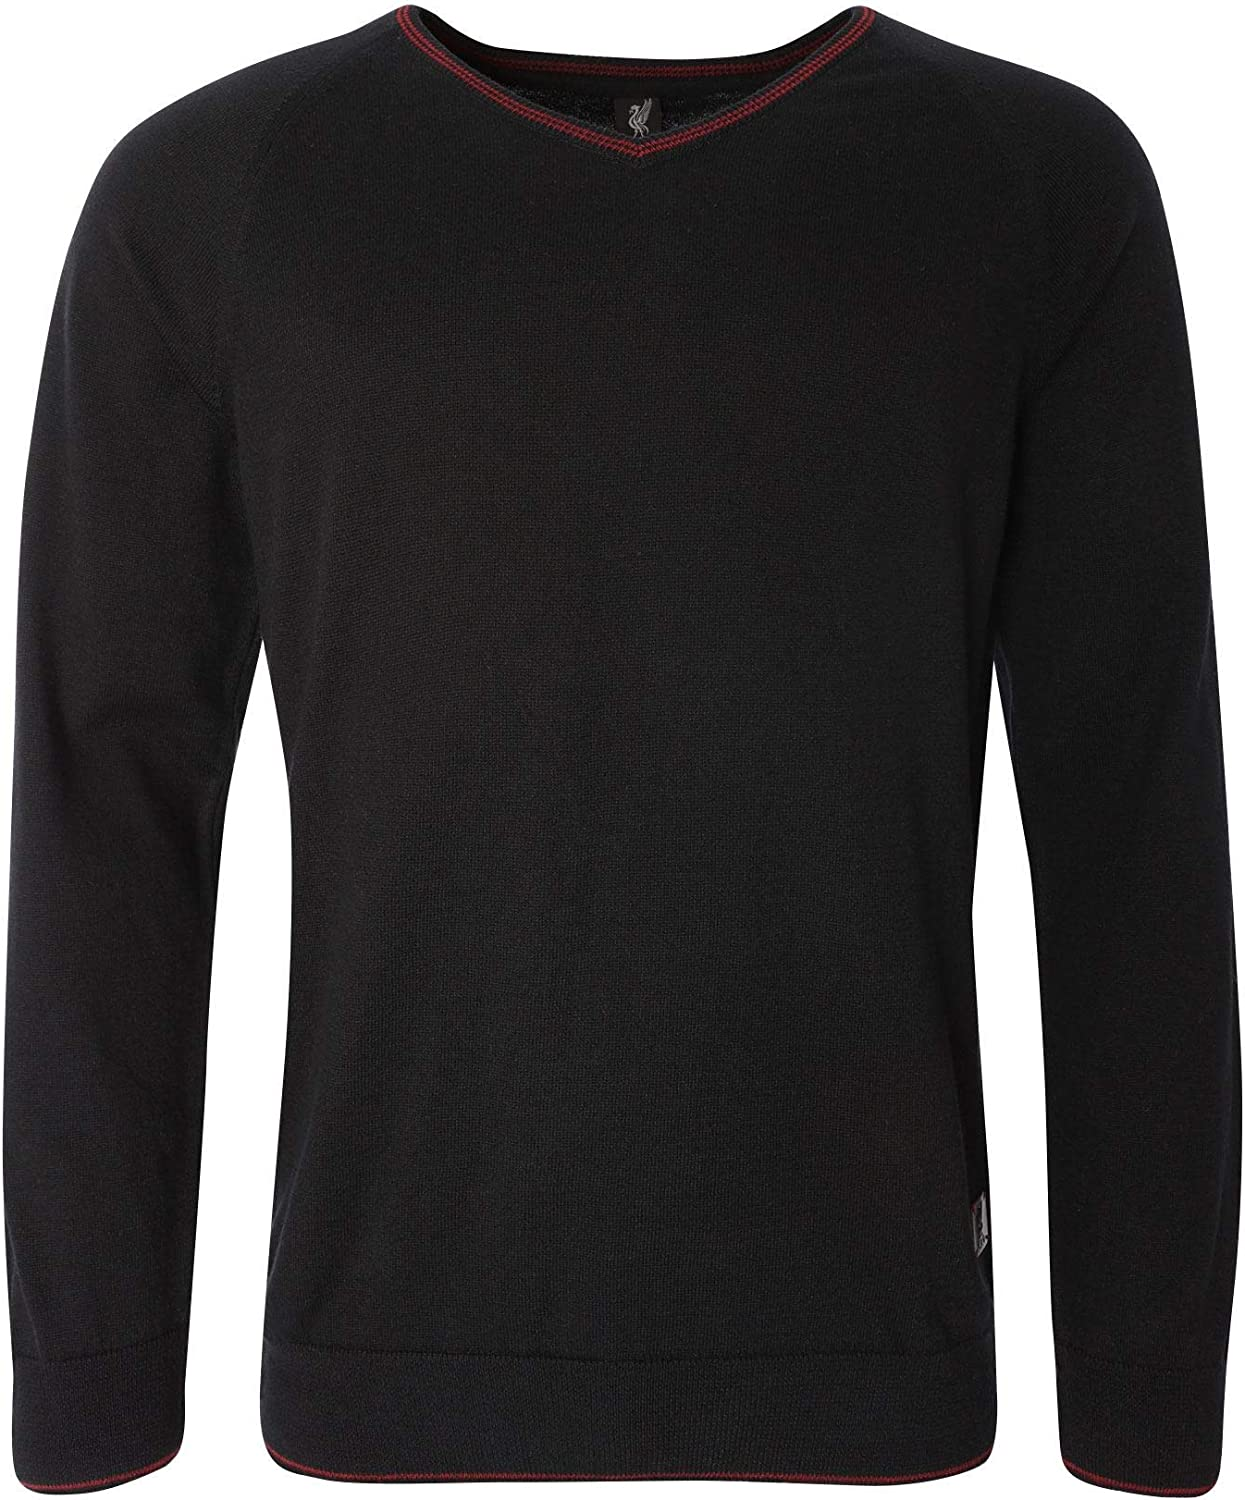 Liverpool FC Black Mens Football Signature Sweater AW 18 19 LFC Official